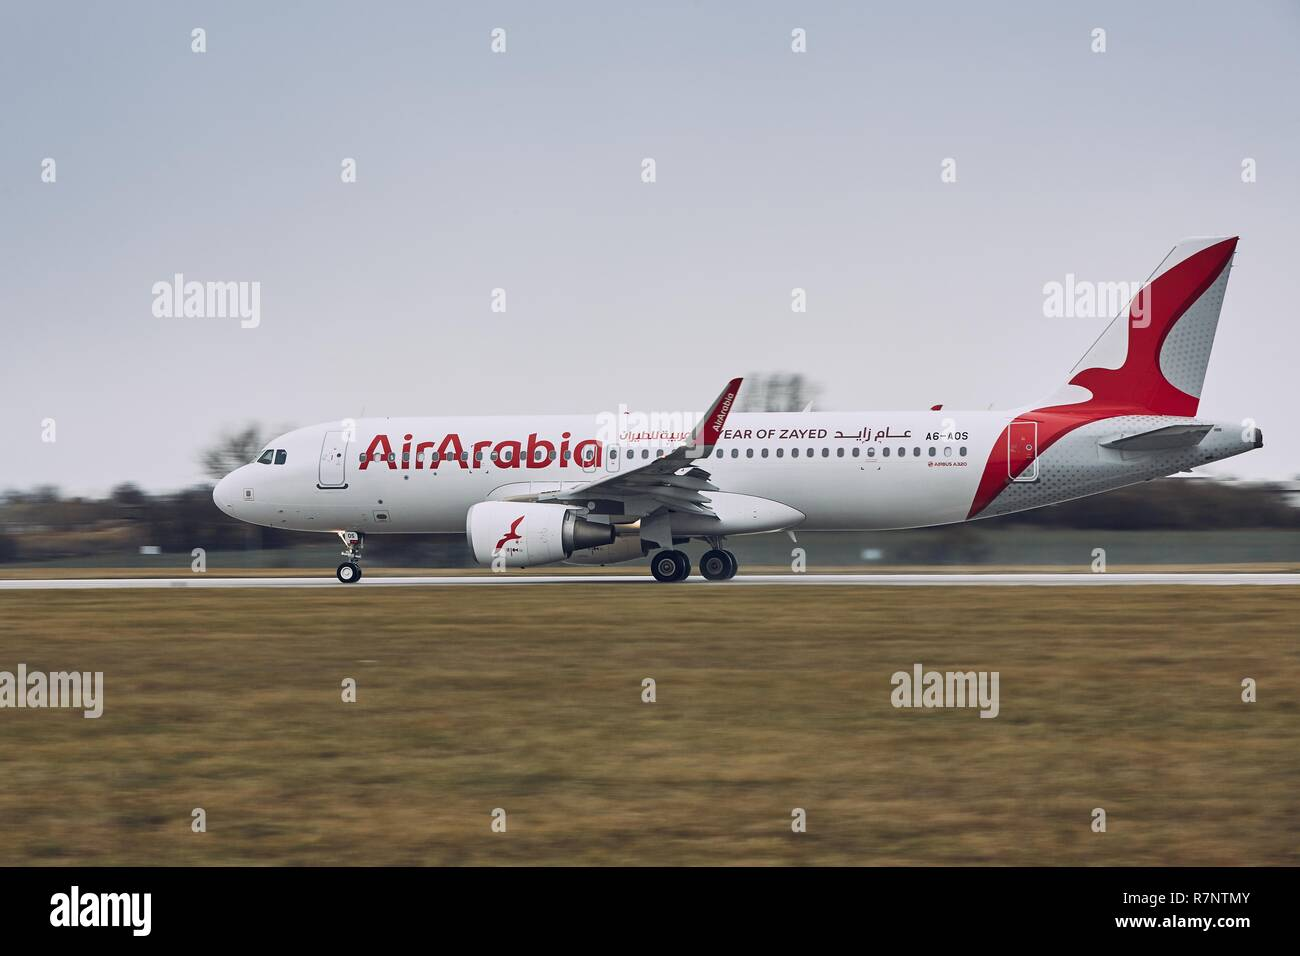 Airport sharjah stock photos airport sharjah stock images alamy - Air arabia sharjah office ...